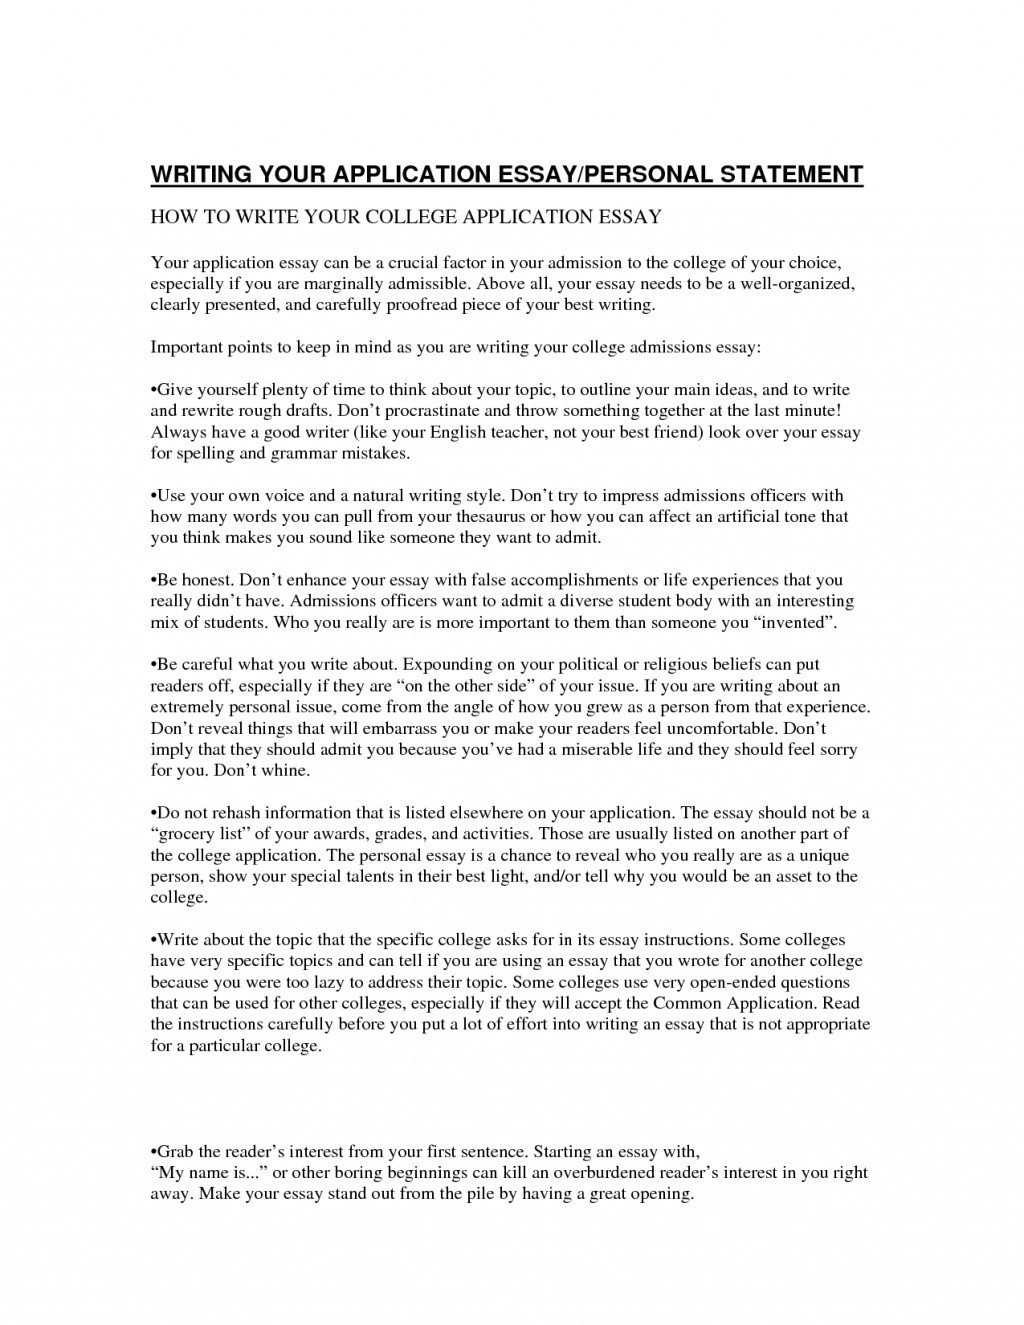 022 Essay Example On Breathtaking Diversity For College Admission Regional In India Indian Culture Large